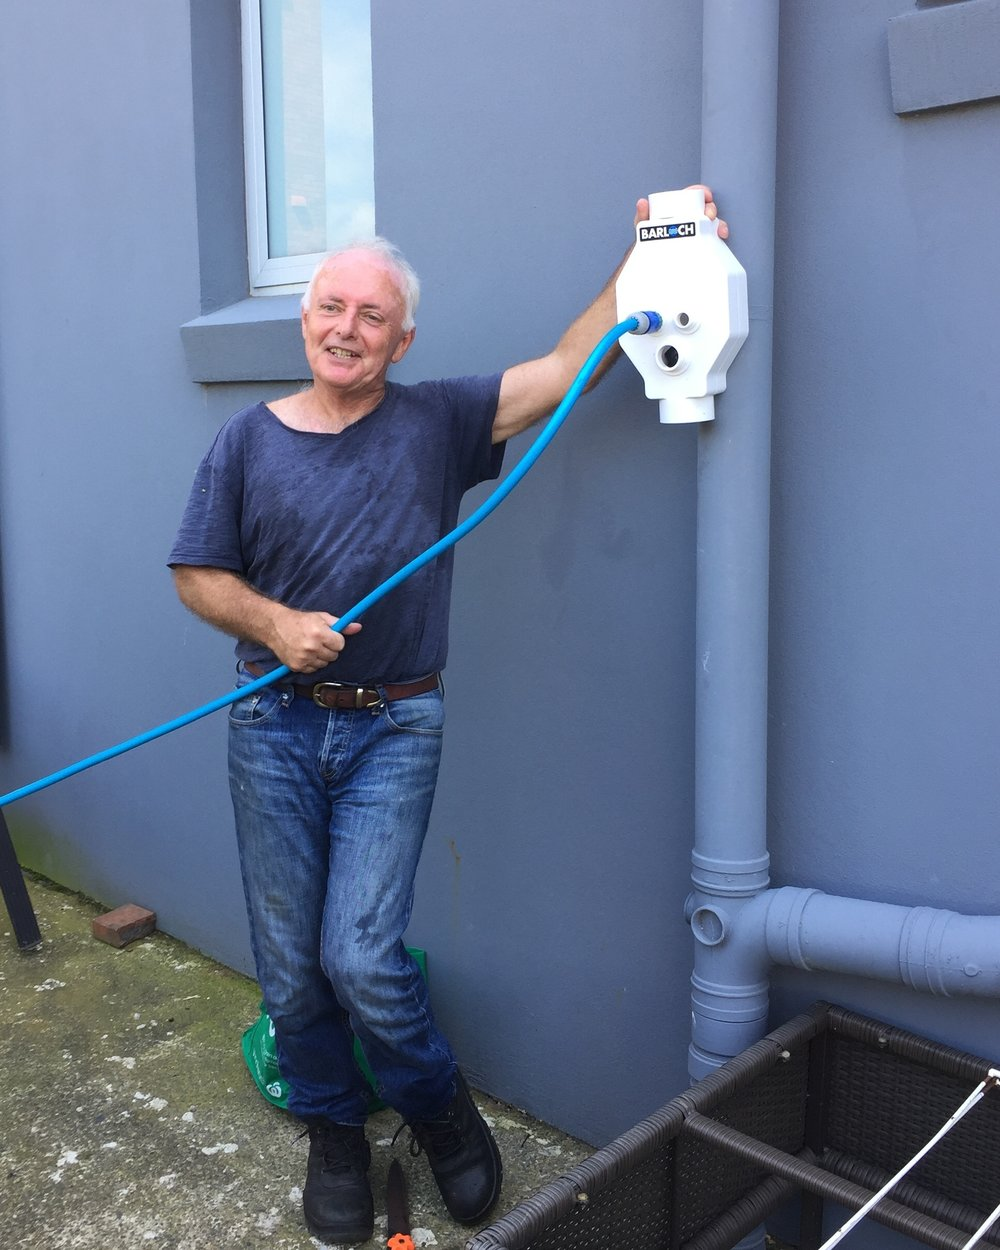 •   Here is an example of a rainwater diverter about to be inserted into a down pipe to direct rainwater to a garden. There are several such products readily available.